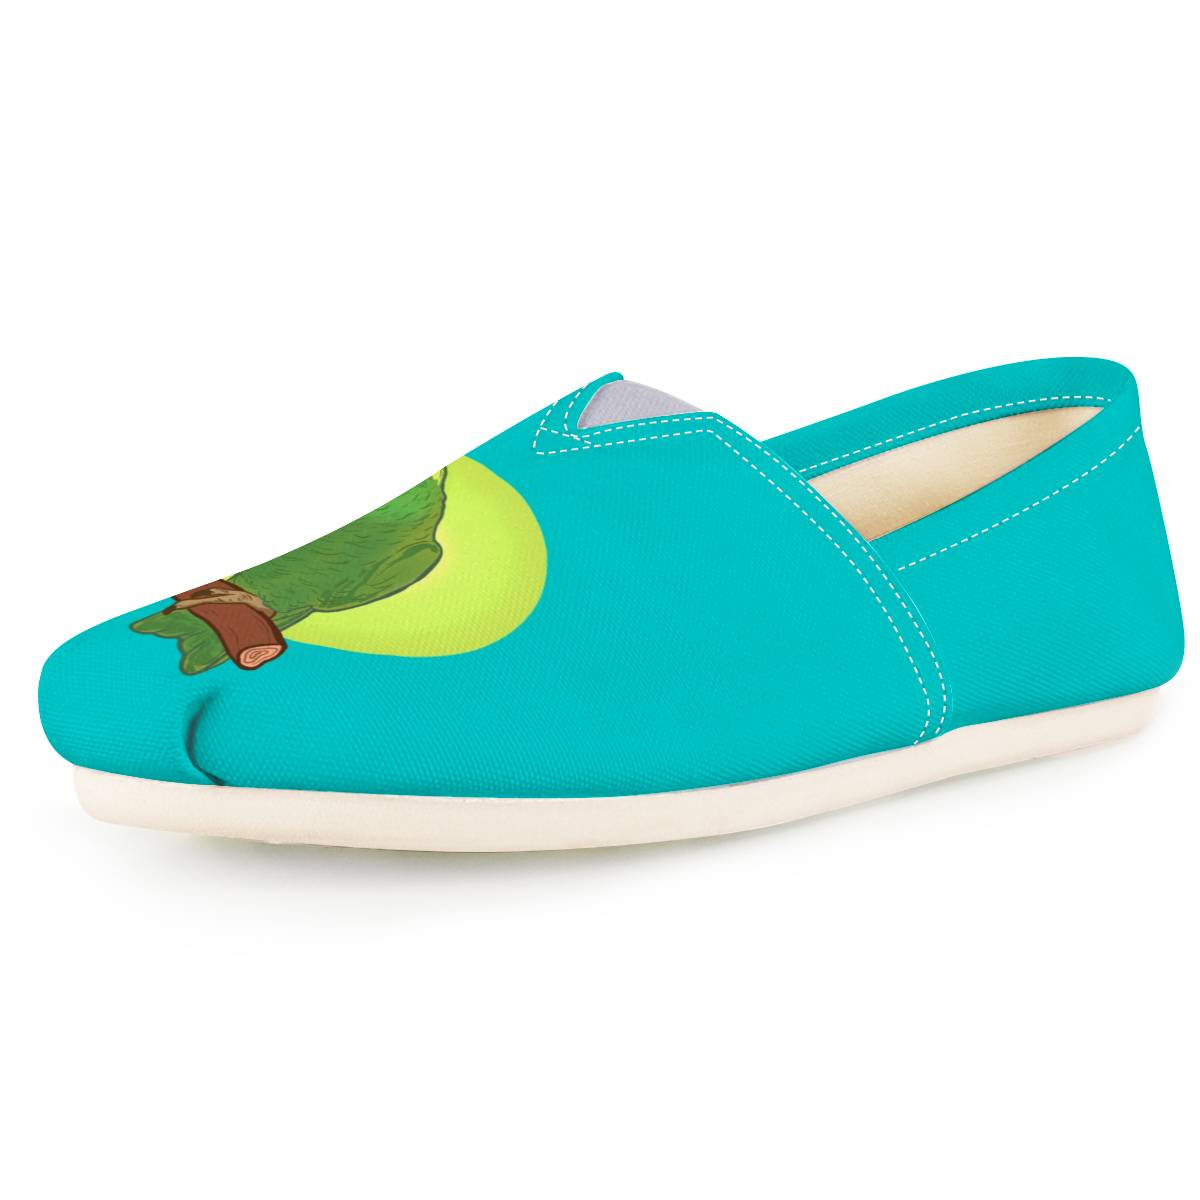 Coconut The Amazon Official Women's Casual Shoes